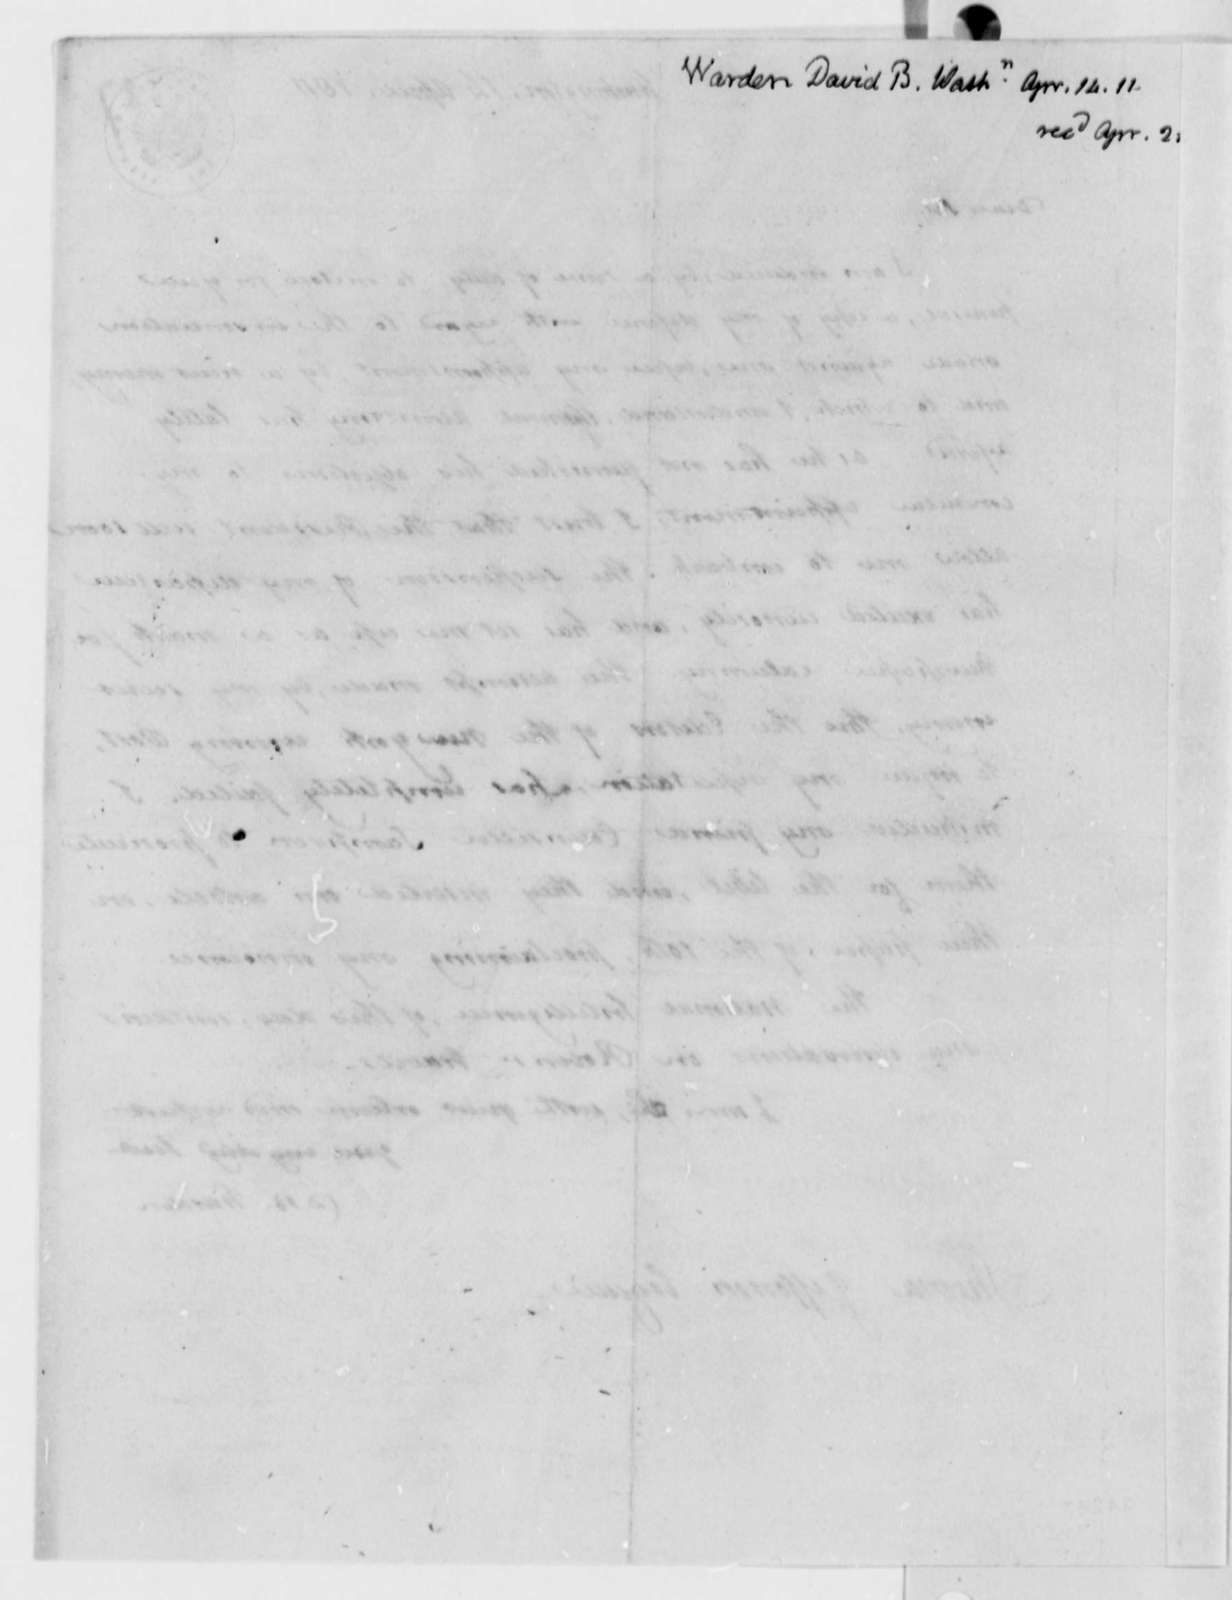 David B. Warden to Thomas Jefferson, April 14, 1811, with Letter to James Madison Dated February 20, 1811